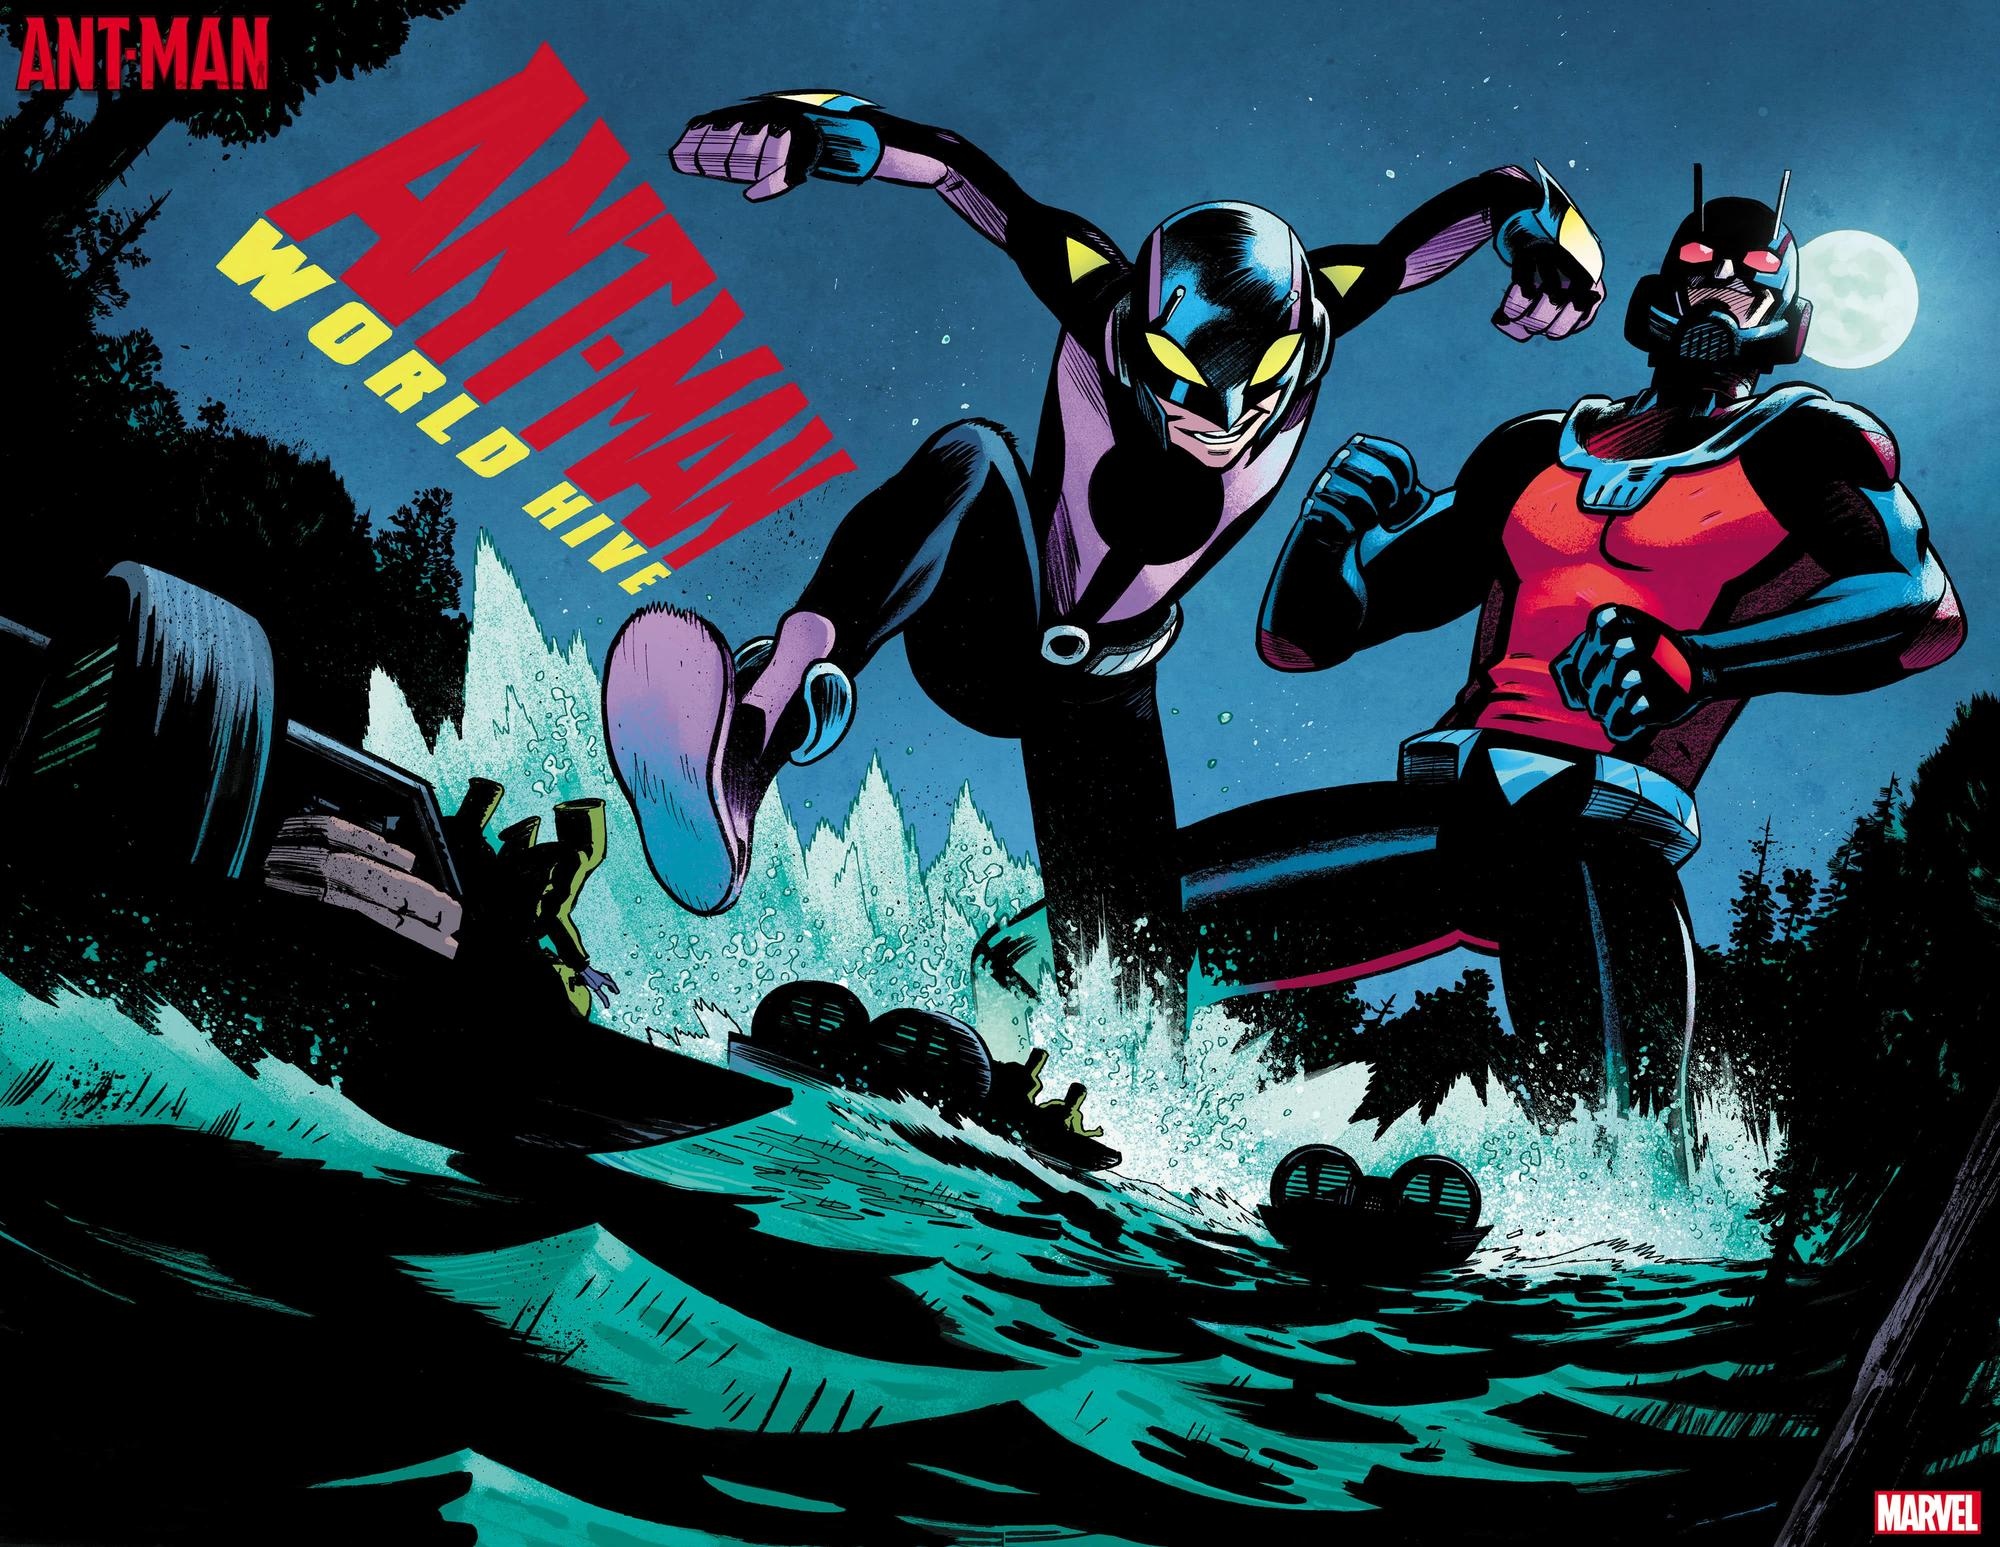 Ant-Man #1 preview art